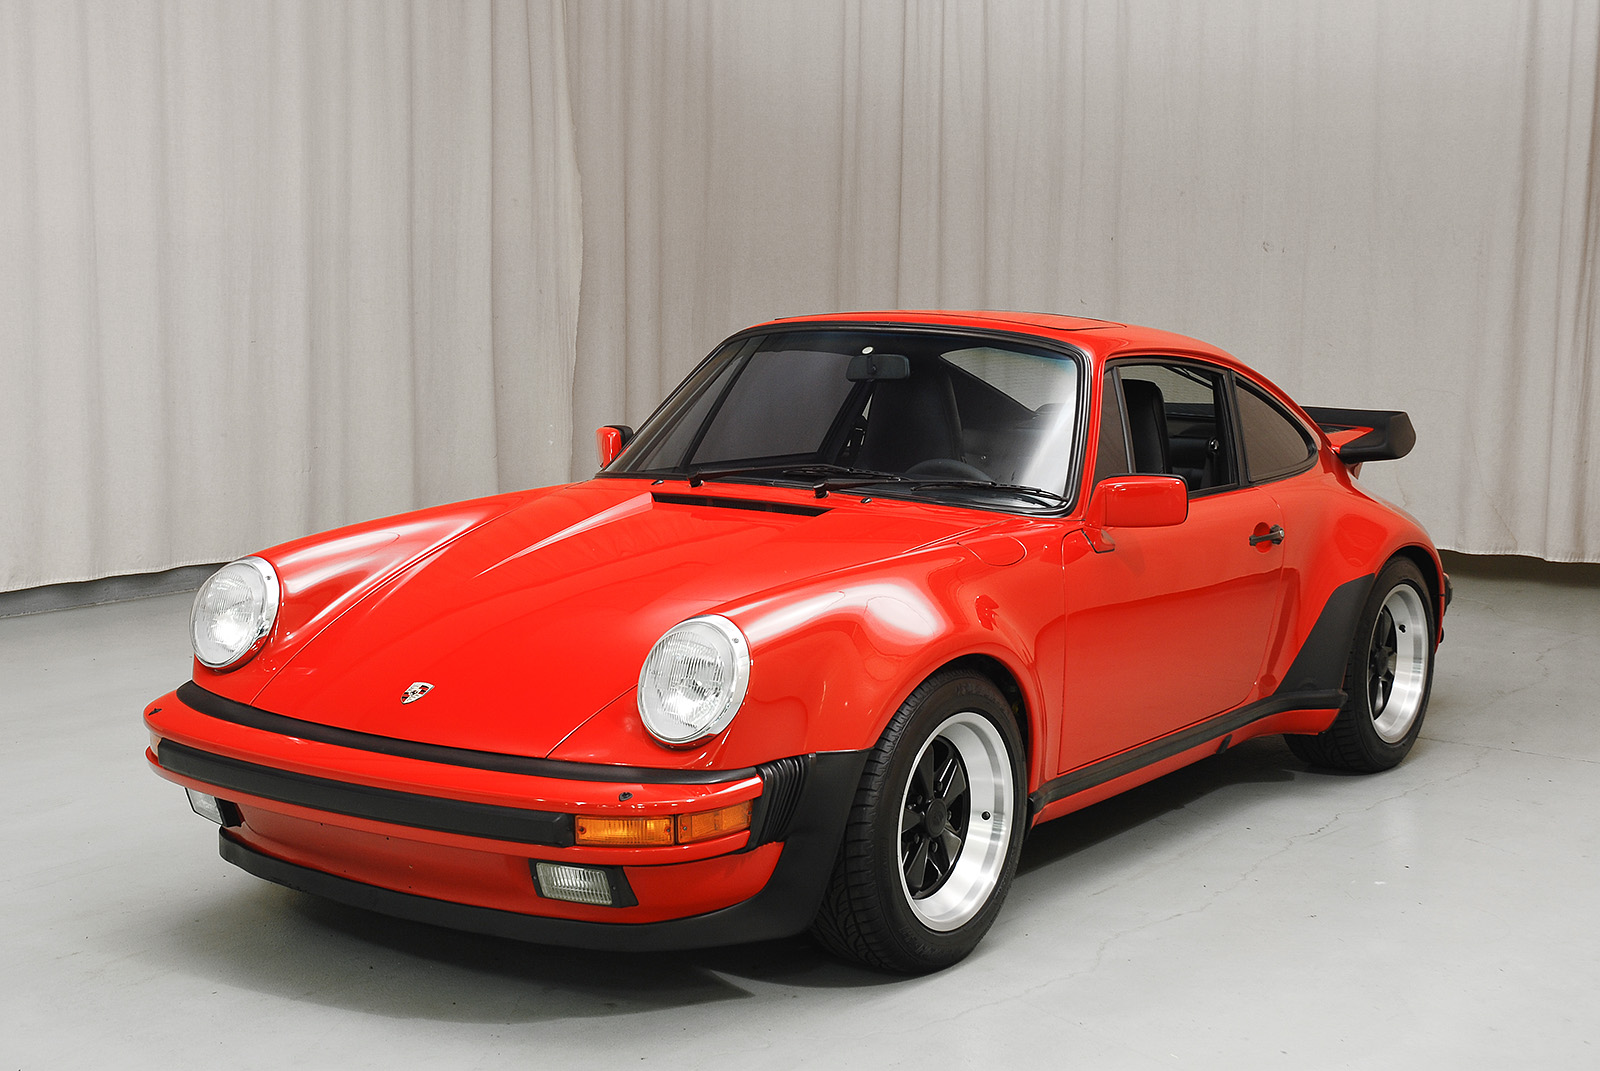 1985 porsche 930 turbo coupe hyman ltd classic cars. Black Bedroom Furniture Sets. Home Design Ideas